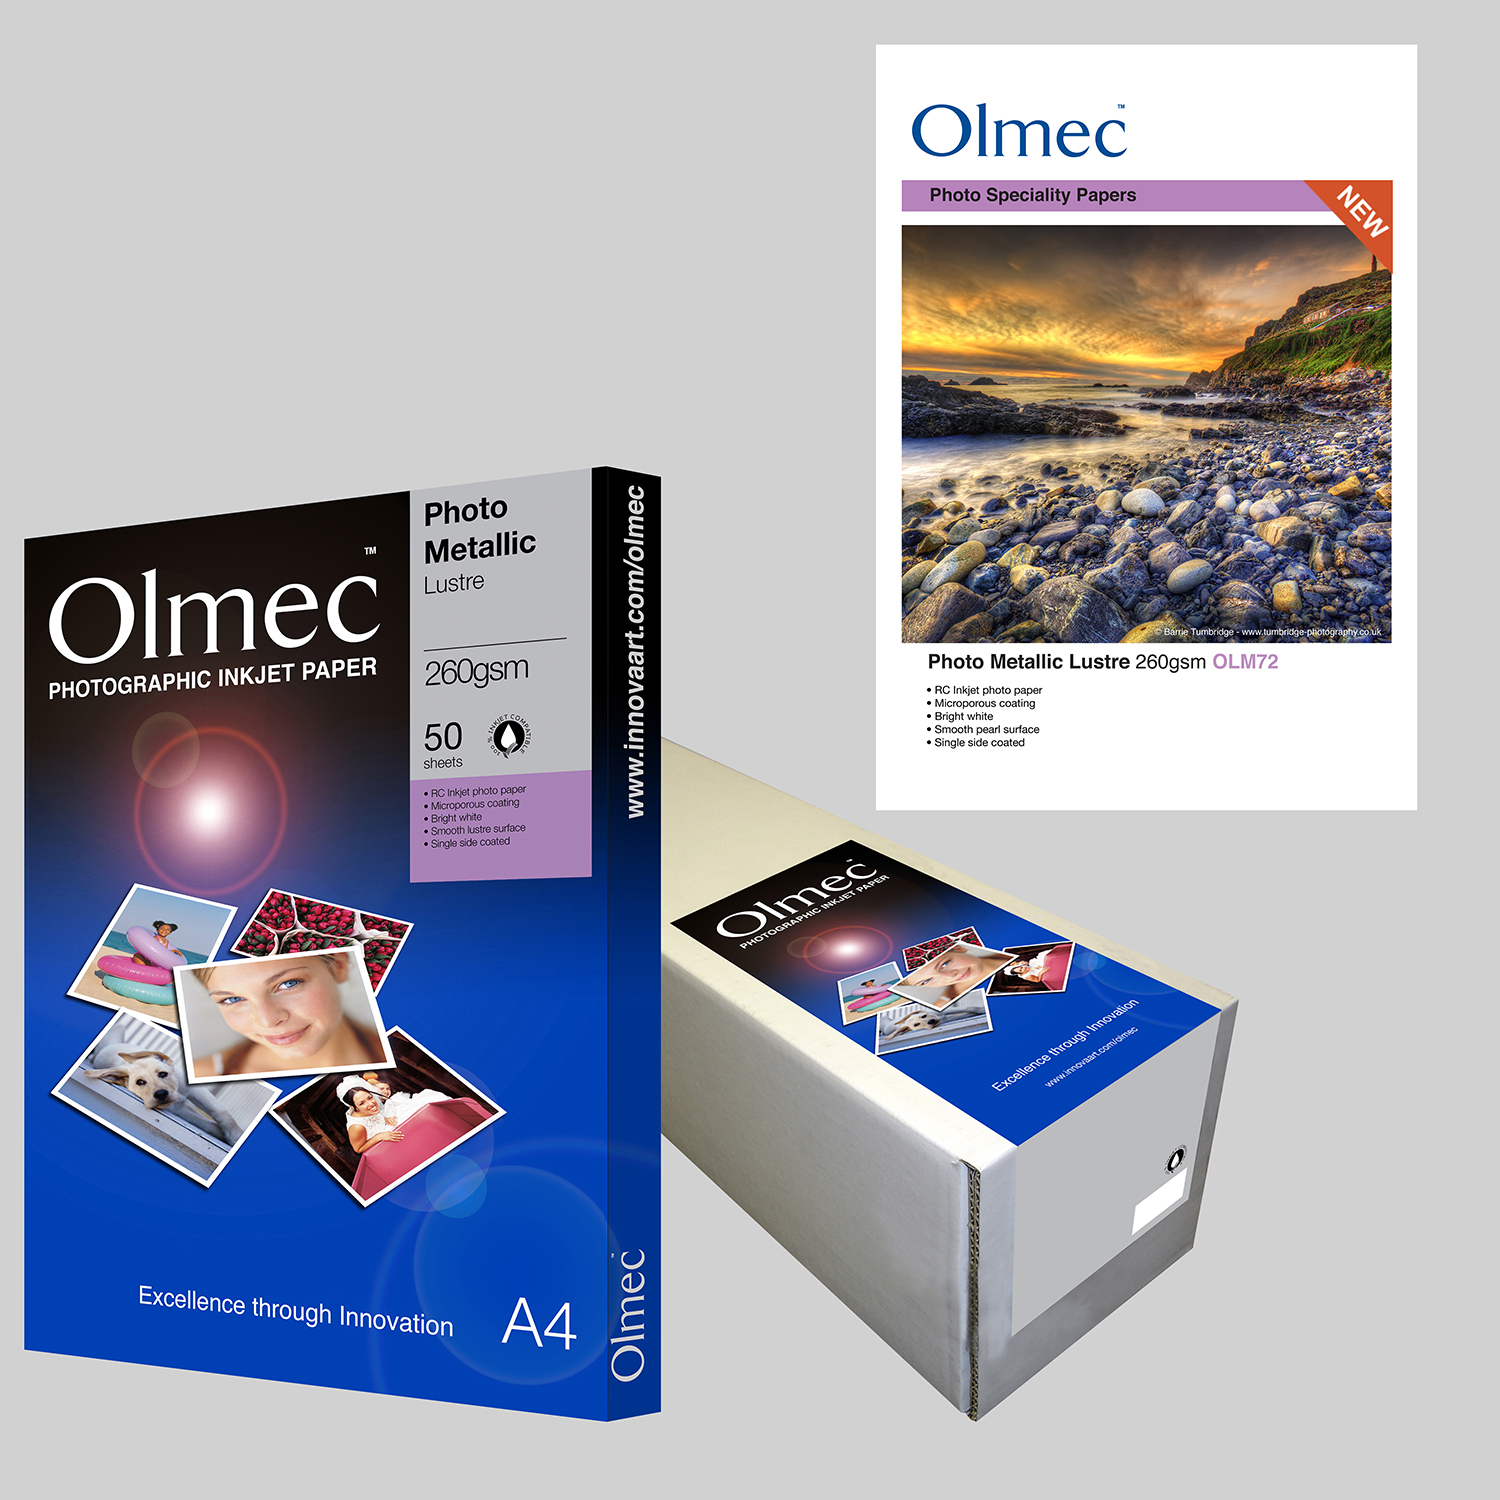 Olmec Photo Metallic Lustre 260gsm OLM 72